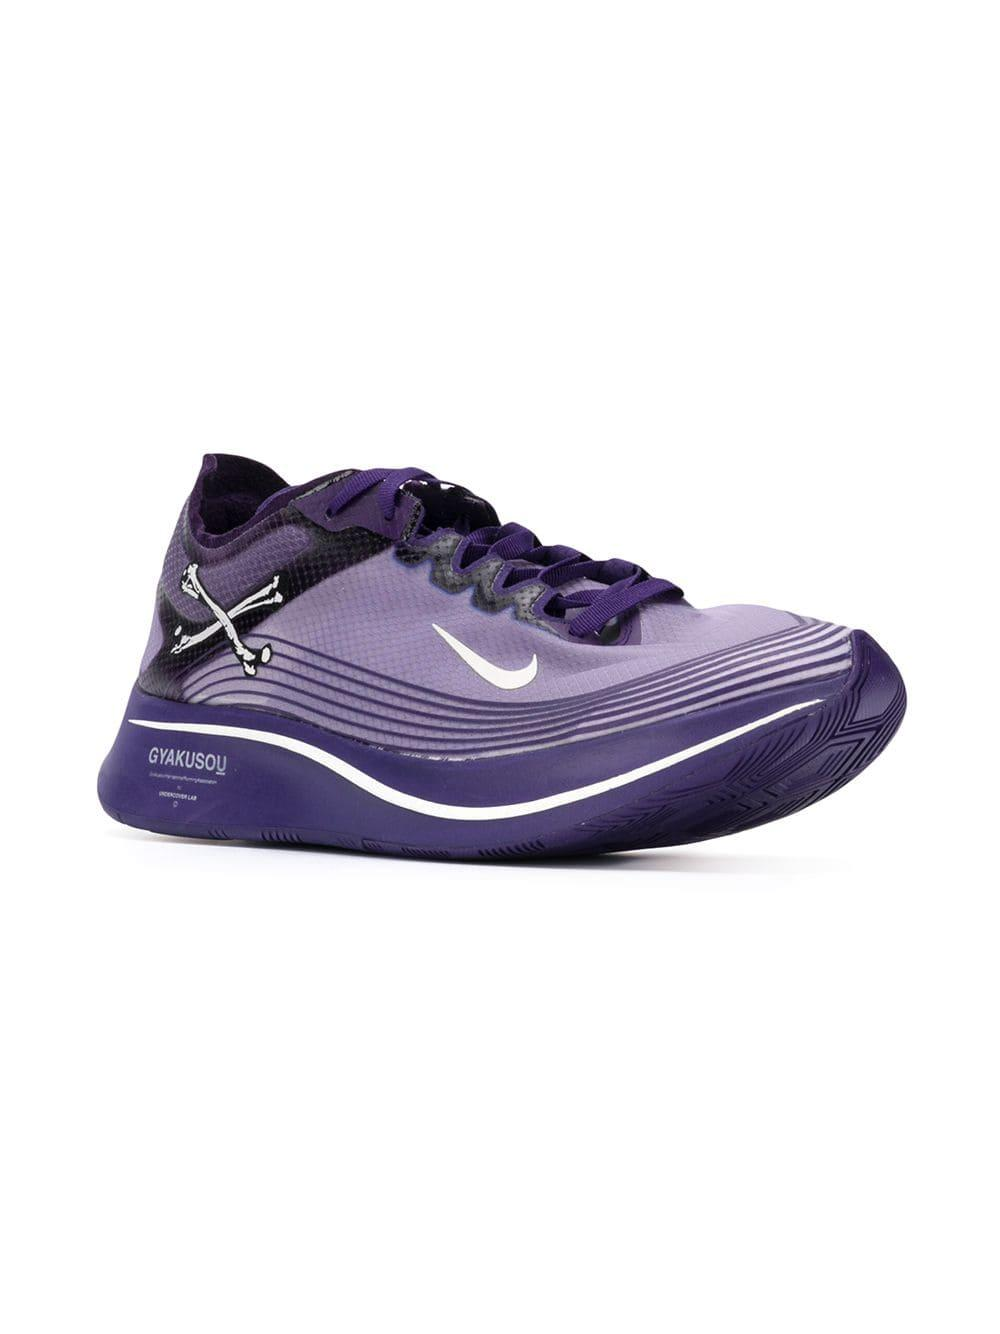 341b319f56b16 Lyst - Nike X Undercover Gyakusou Zoom Fly Sp Sneakers in Purple for Men -  Save 25%